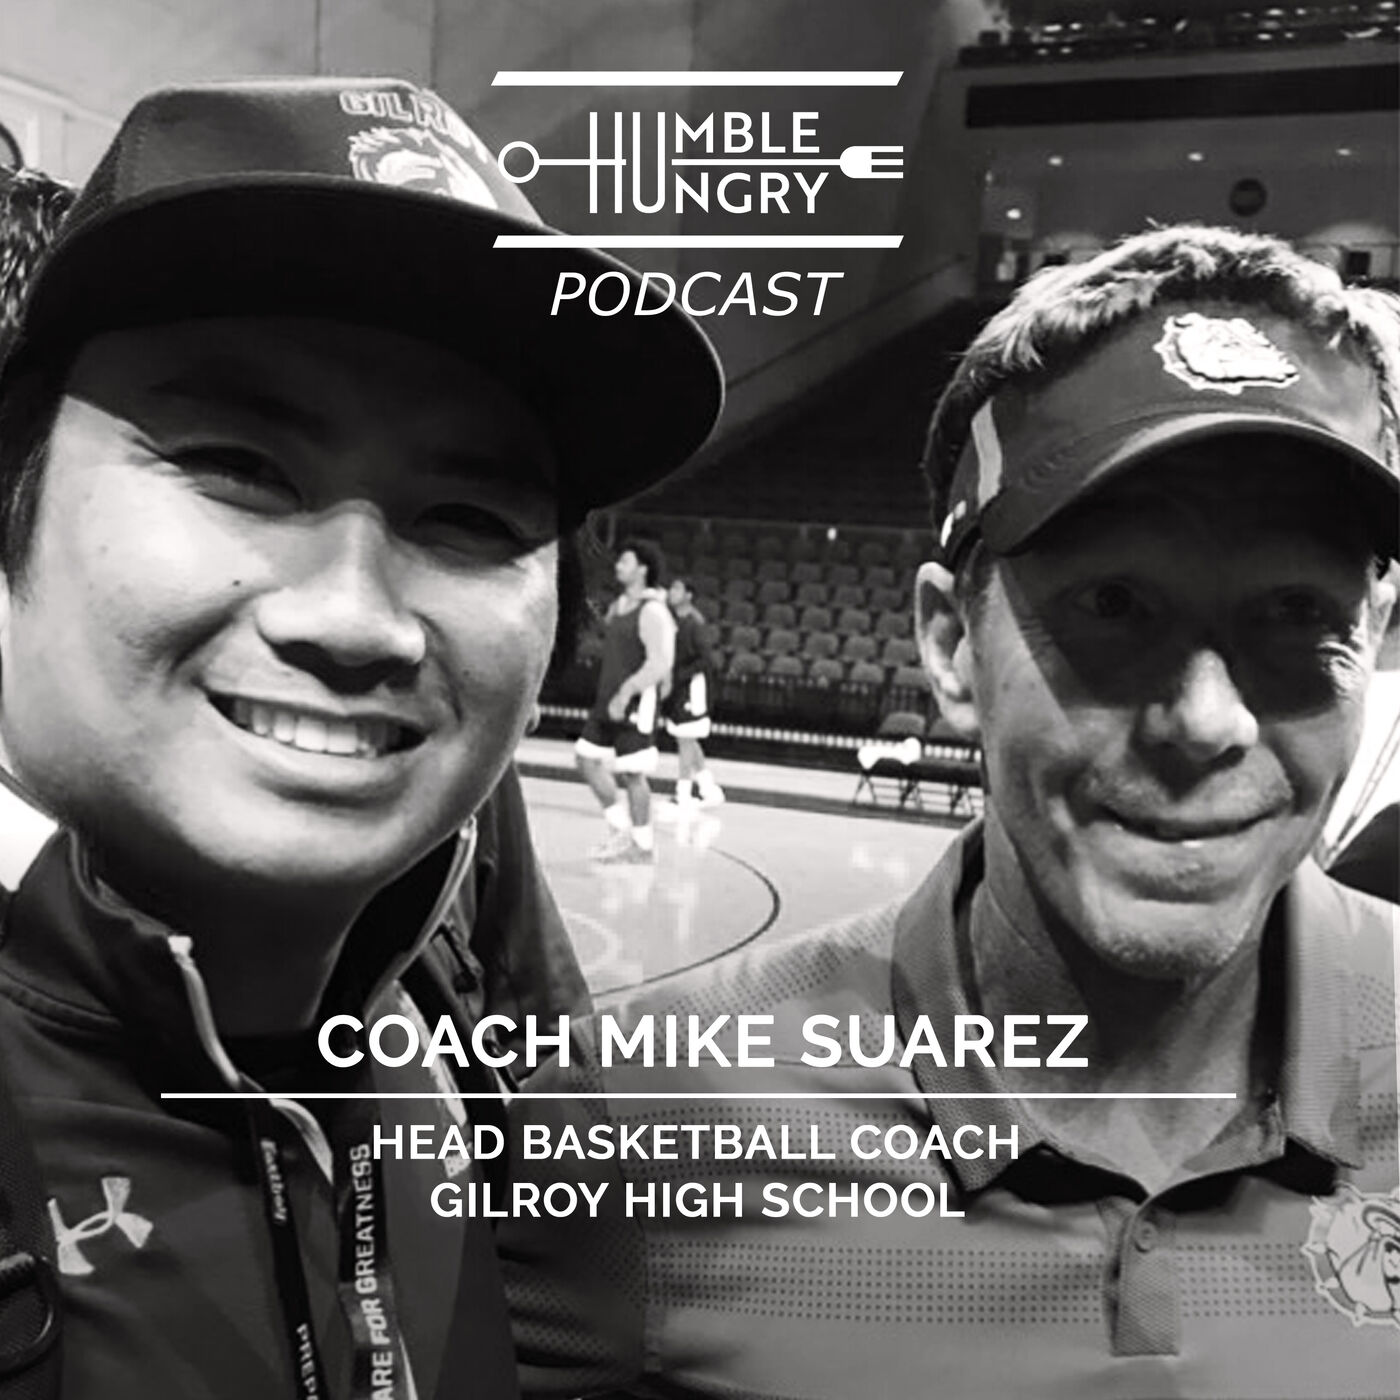 Coach Mike Suarez: In case we die tomorrow, I love you.